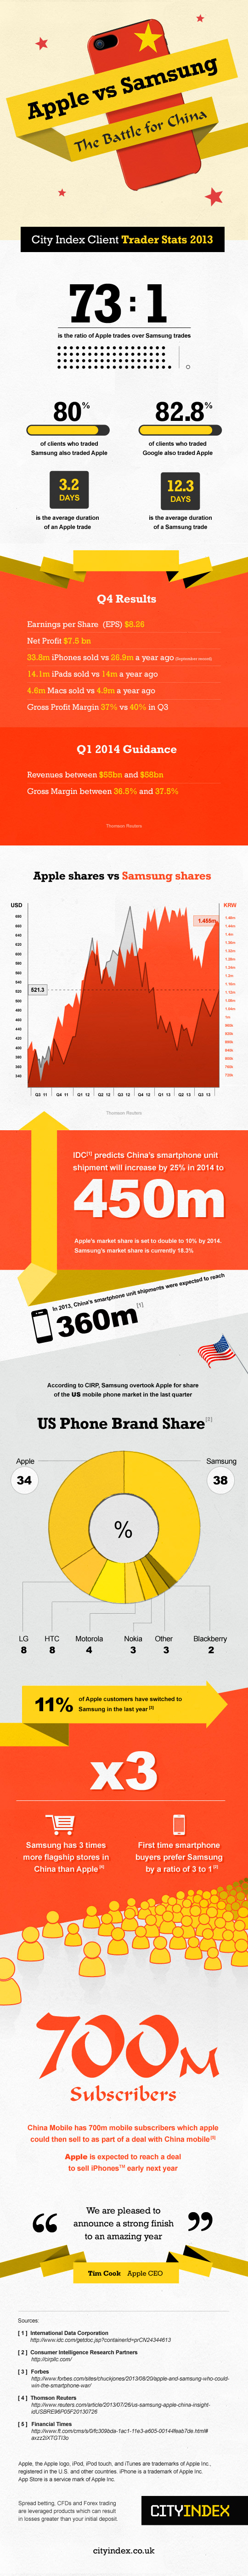 Apple vs. Samsung – The Battle for China [Infographic]